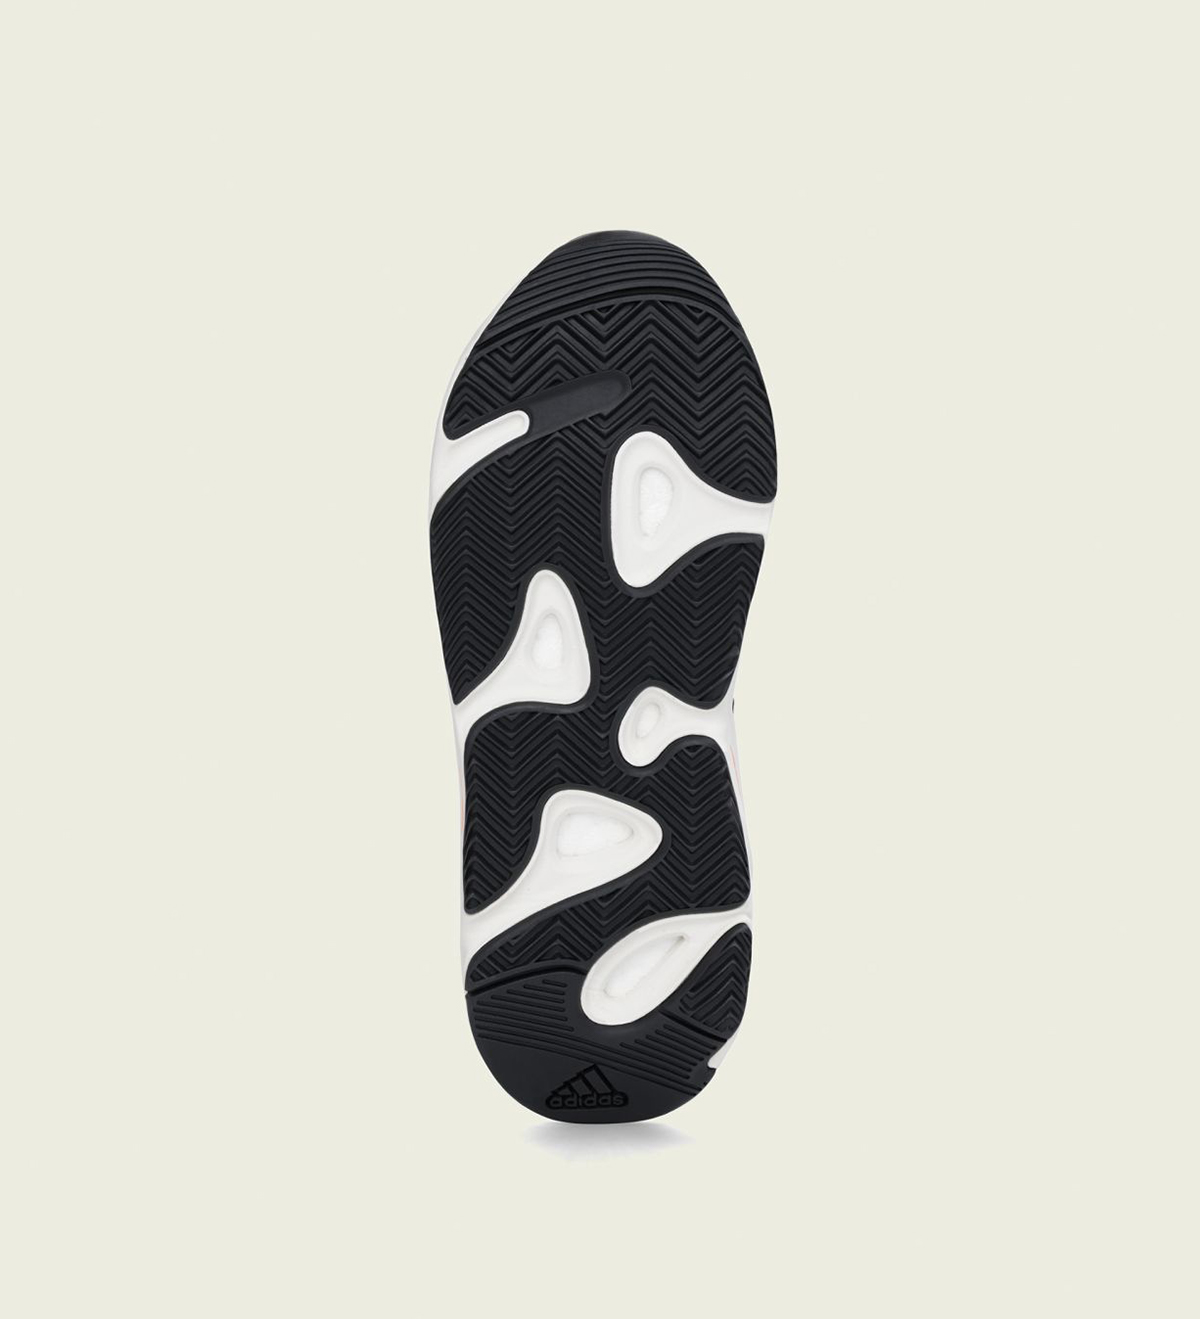 """Hubert Hudson Que Gran Barrera de Coral  Yes — The YEEZY BOOST 700 """"Wave Runner"""" Will Still Re-Release on August  17th - HOUSE OF HEAT 